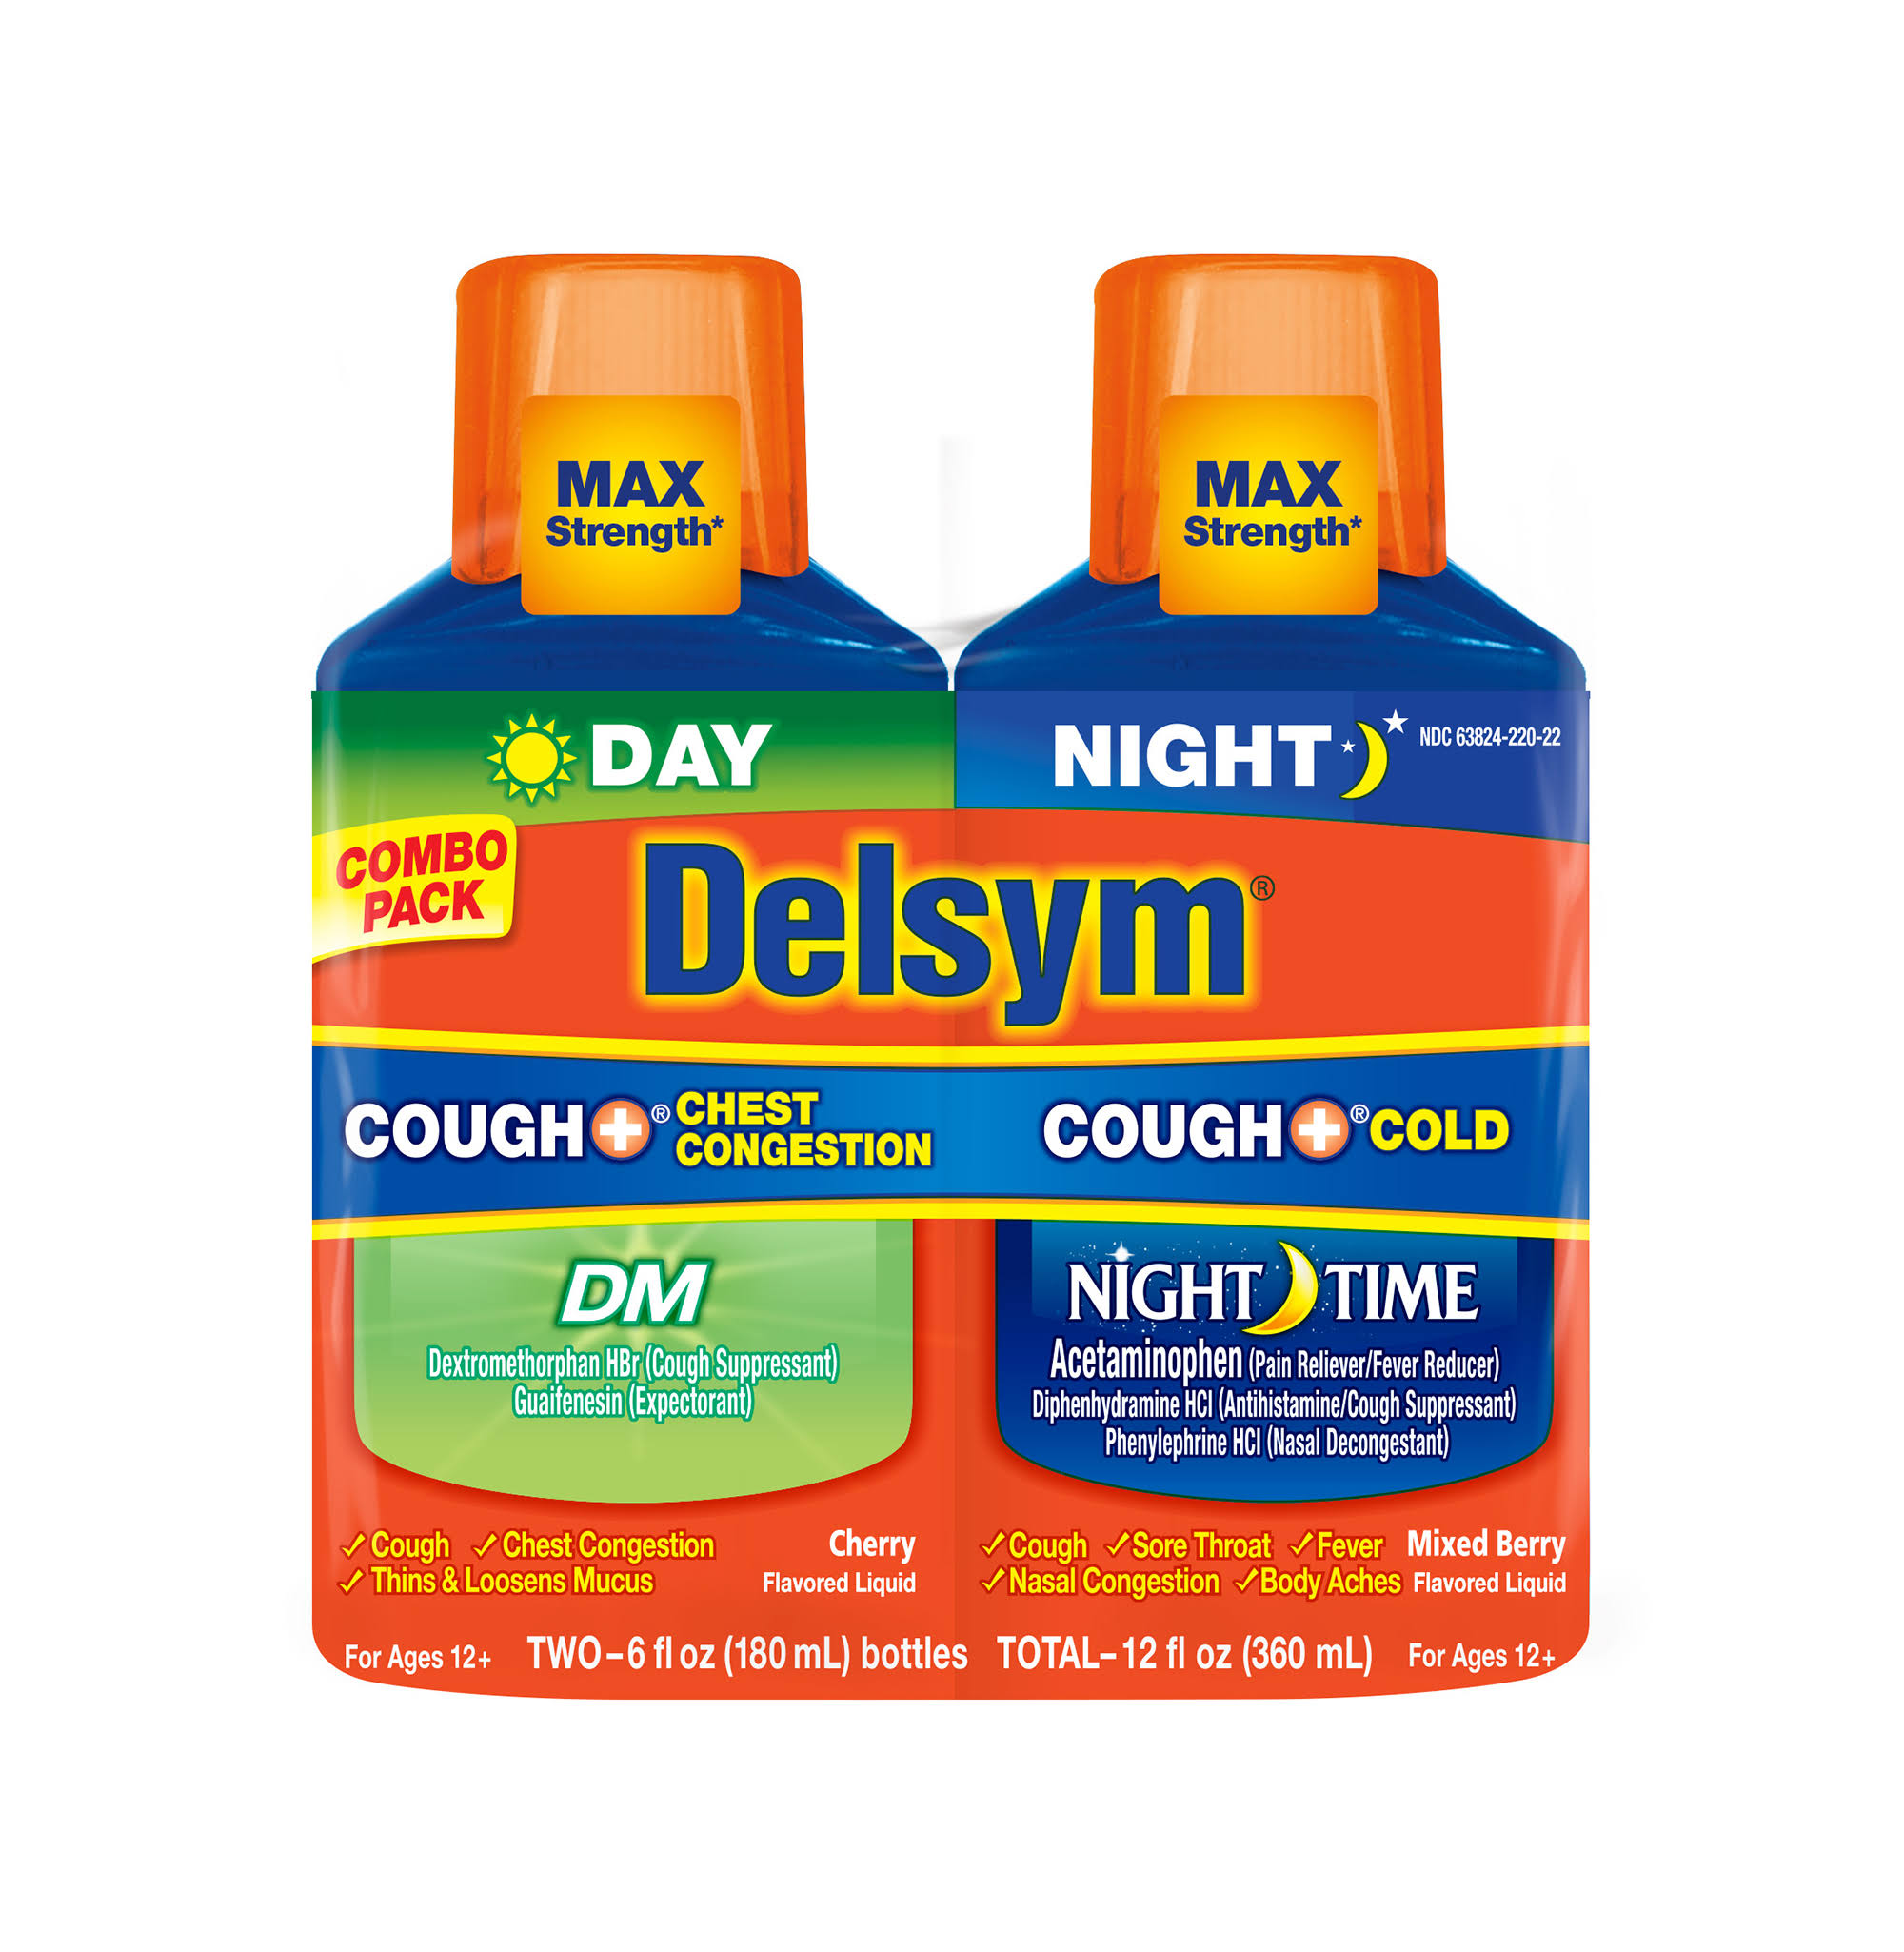 Delsym Cough + Congestion/Cough + Cold, Day/Night, Max Strength, Cherry Flavored Liquid/Mixed Berry Flavored Liquid, Combo Pack - 2 pack, 6 fl oz bottles